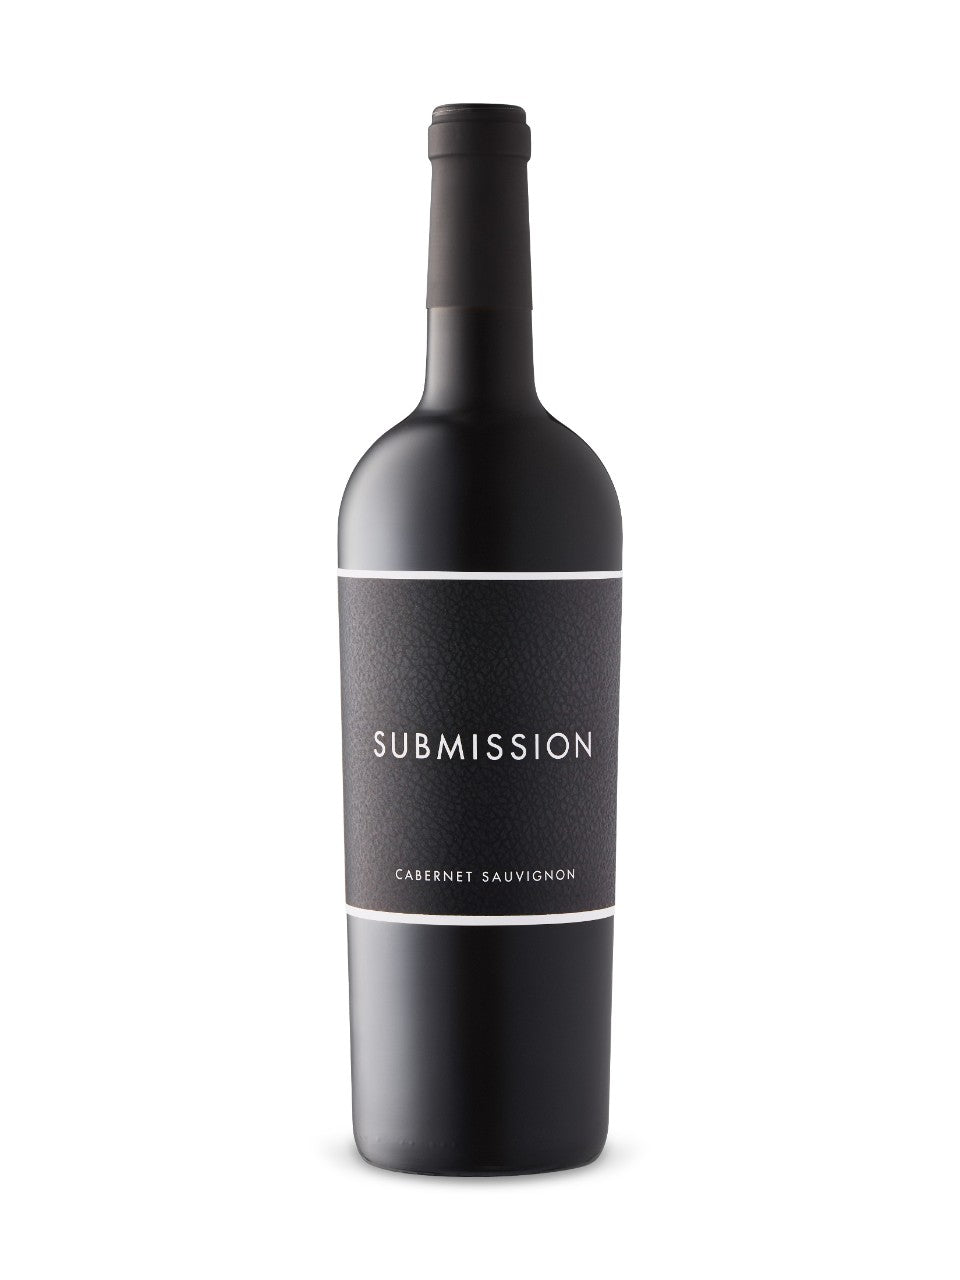 689 CELLARS 2017 SUBMISSION CABERNET SAUVIGNON